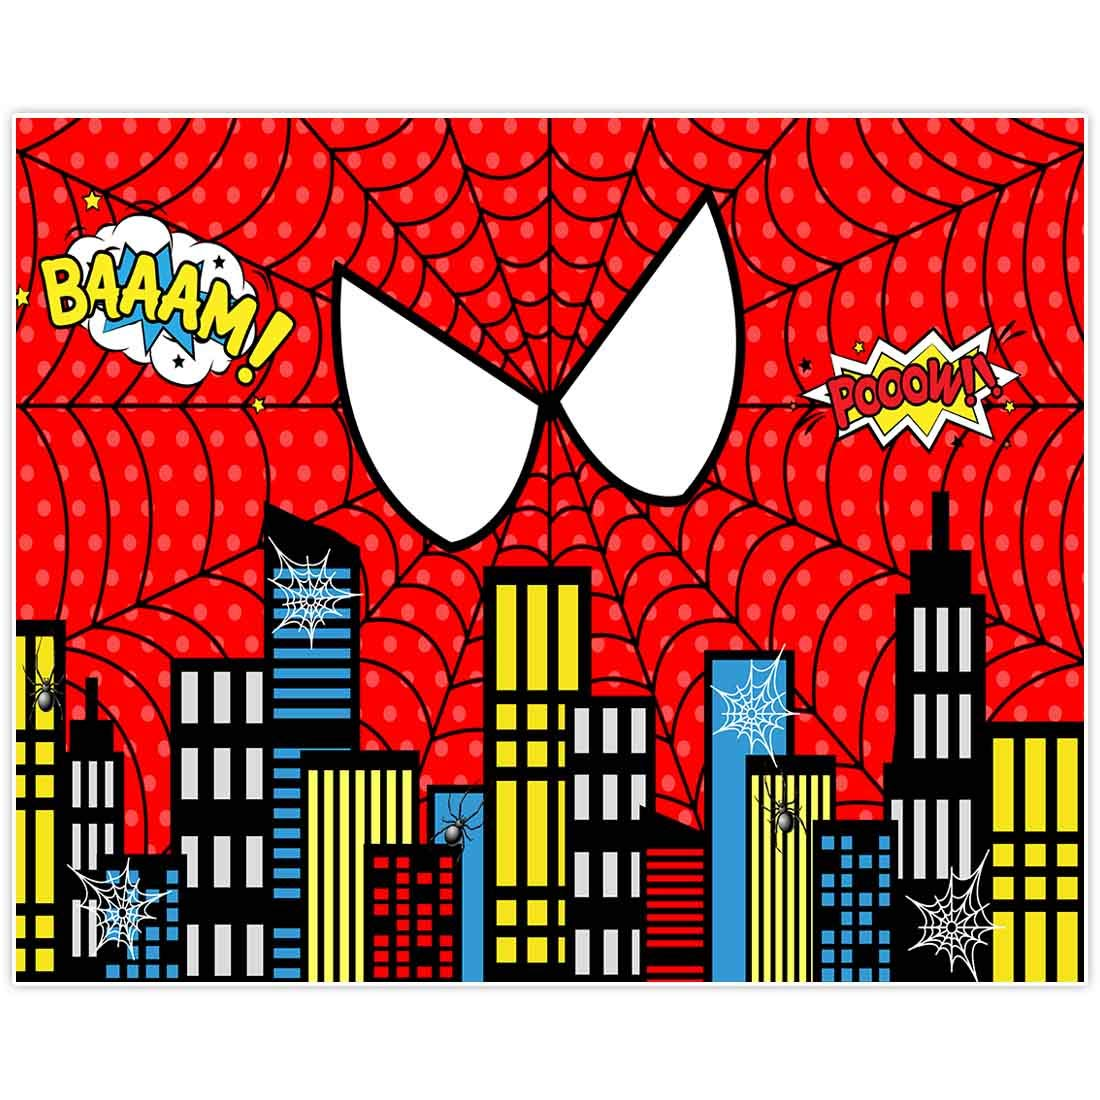 Allenjoy 10x8ft Fabric Red Superhero Cityscape Theme Backdrop for Photography 1st Boys Birthday Party Baby Shower Decorations Family Gathering Background Cake Smash Photo Shoot Photobooth Studio Props